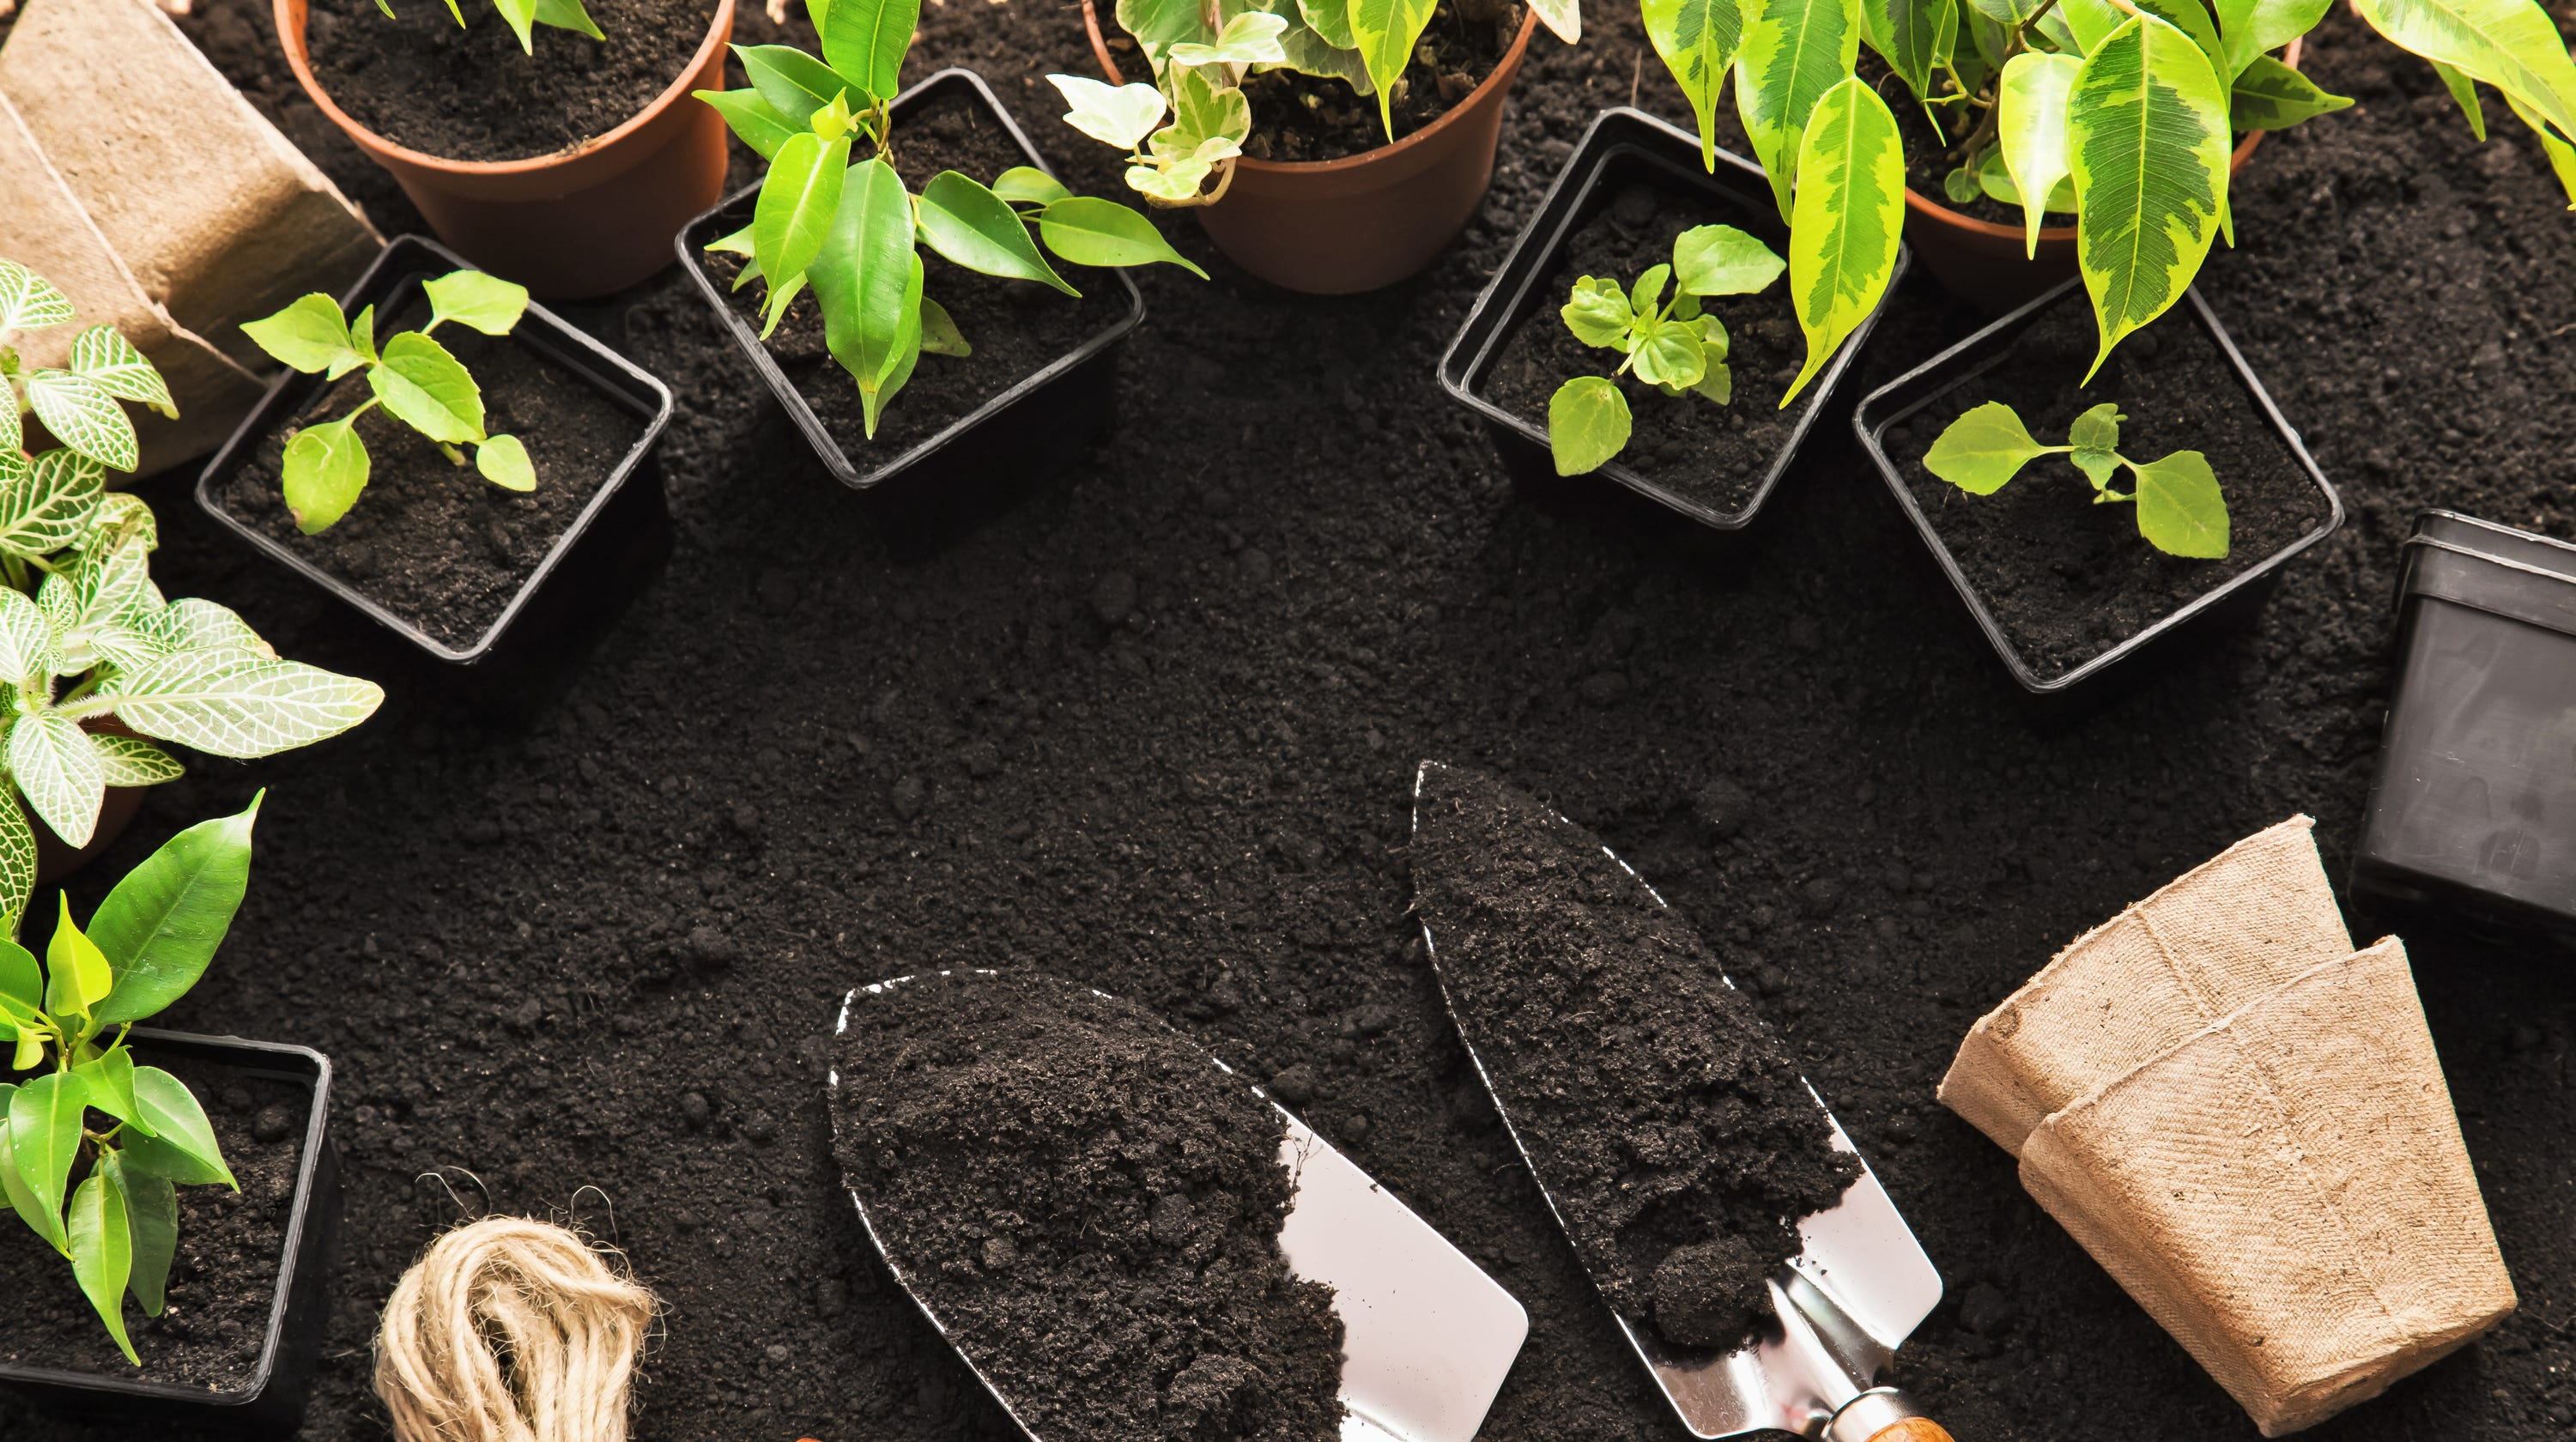 Growing vegetables? Here are some great resources for gardening greenhorns